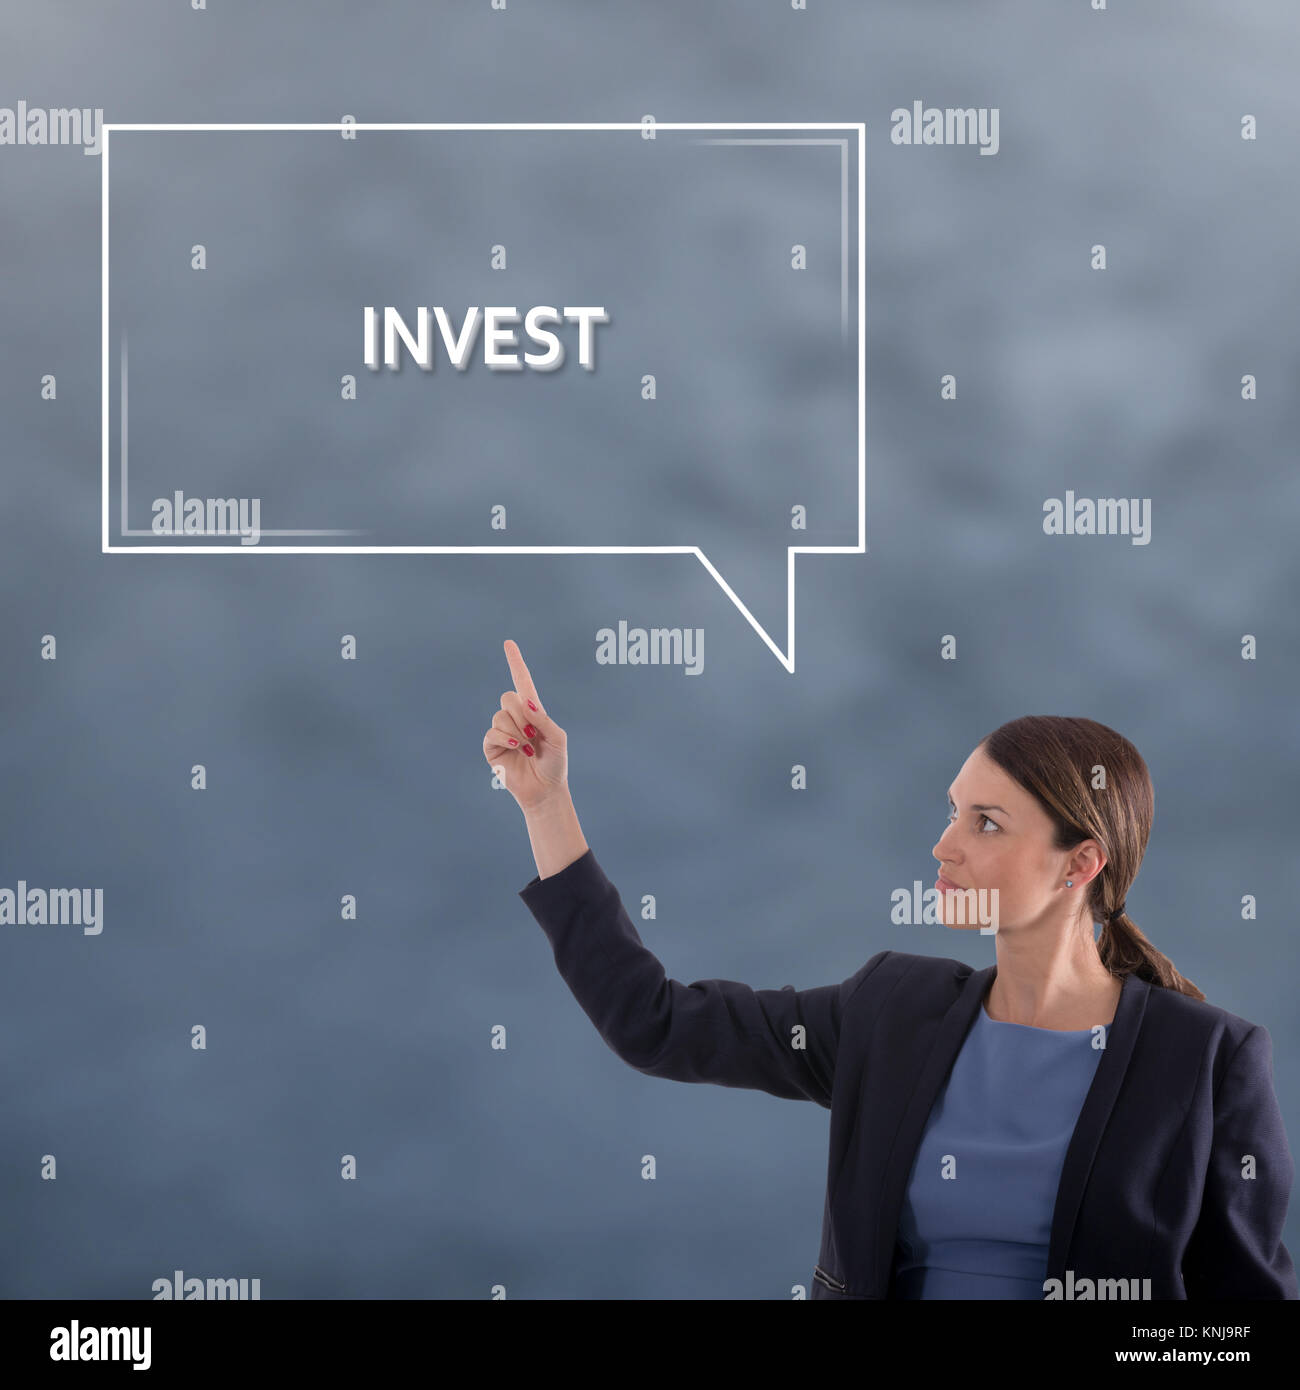 INVEST Business Concept. Business Woman Graphic Concept - Stock Image